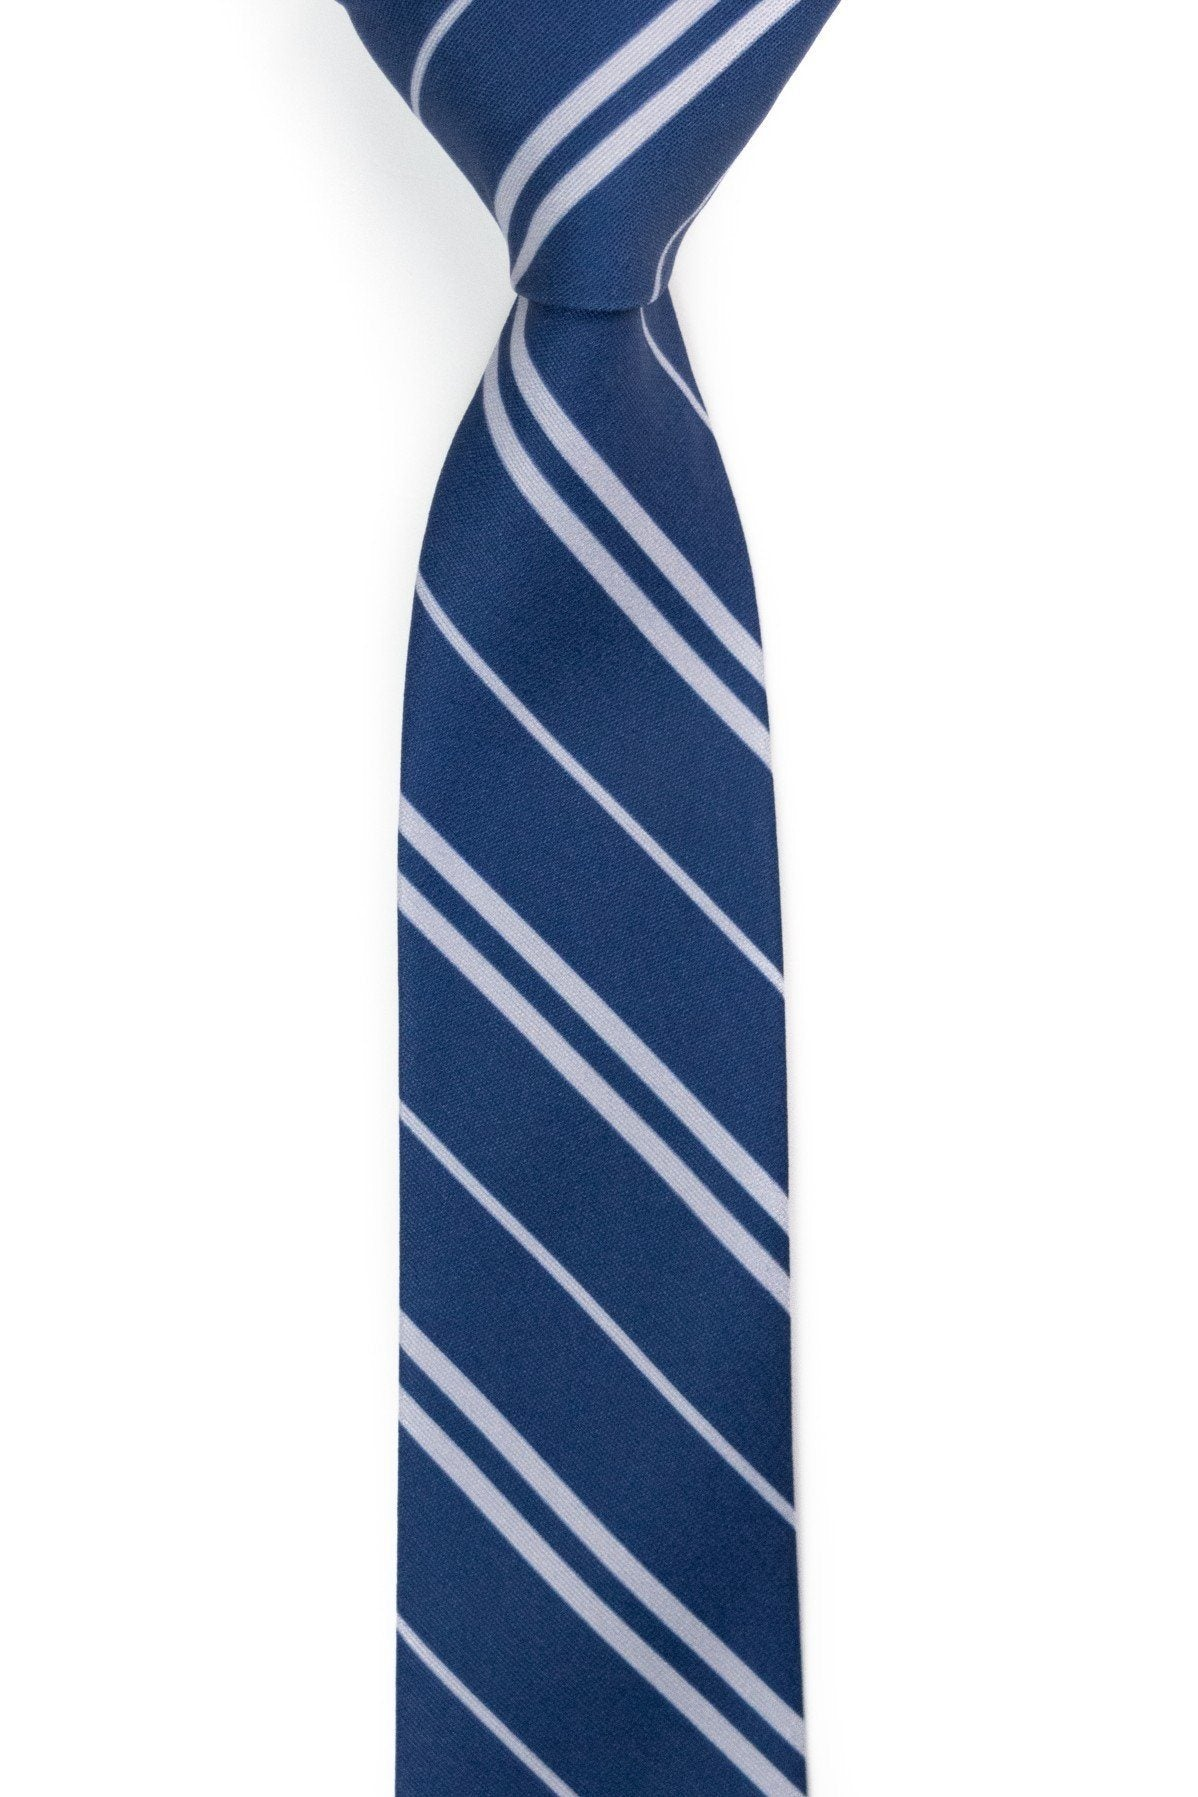 Raven's Claw - Navy Striped Tie